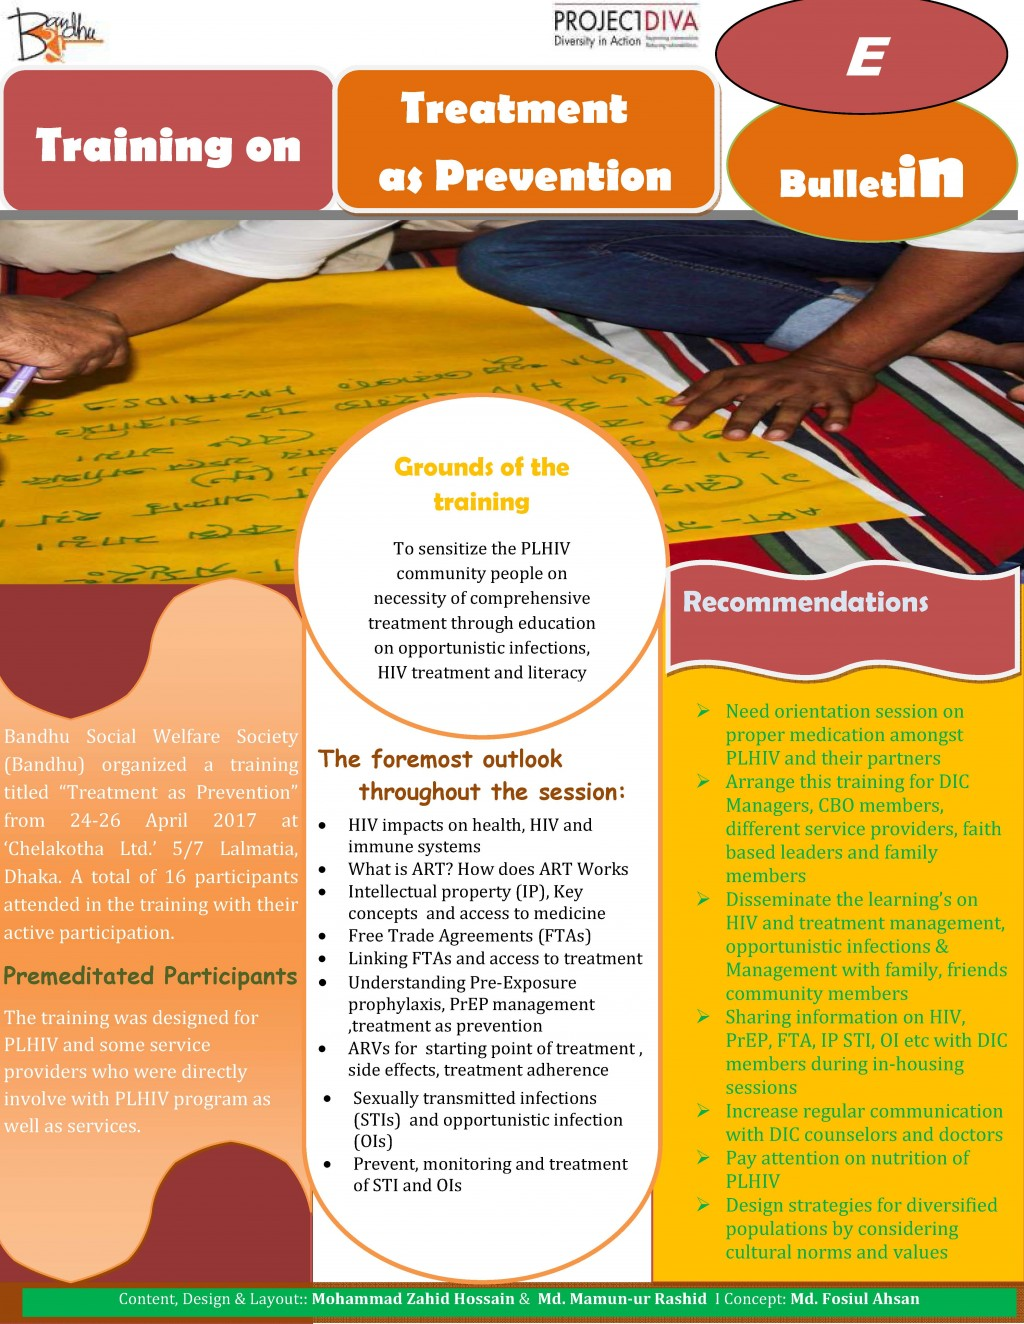 E_Bulletin_Treatment as Prevention